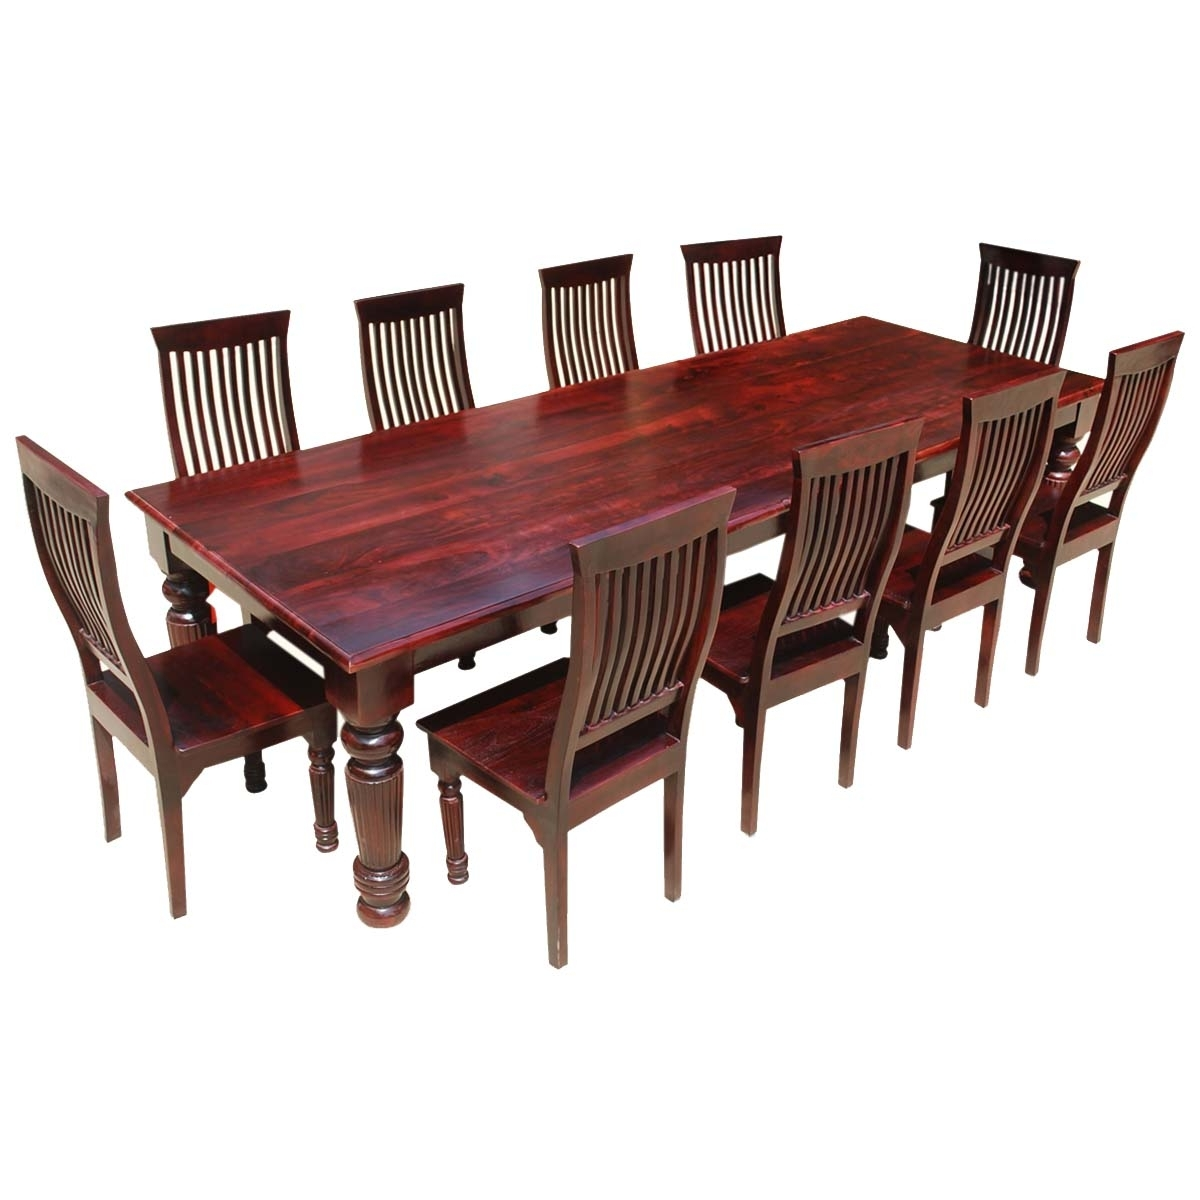 Colonial American Large Rustic Wood Dining Table And 10 Chairs Set Intended For Most Recent Dining Table And 10 Chairs (View 14 of 25)